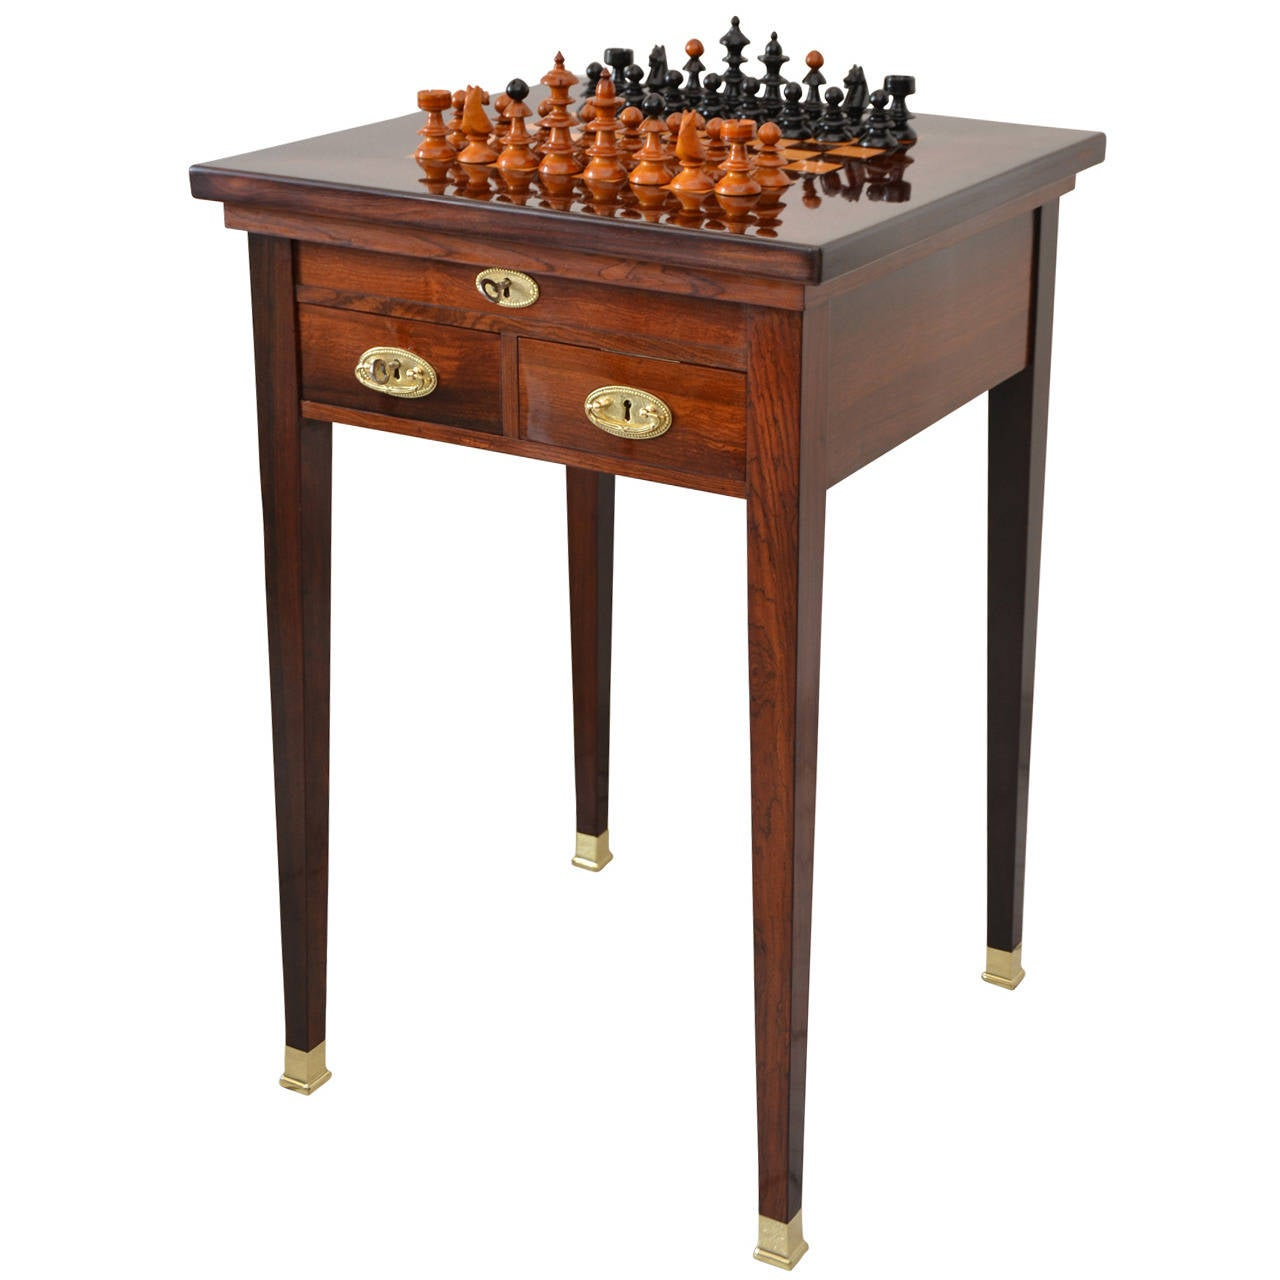 Viennese Convertible Chess Table in Rosewood Veneer